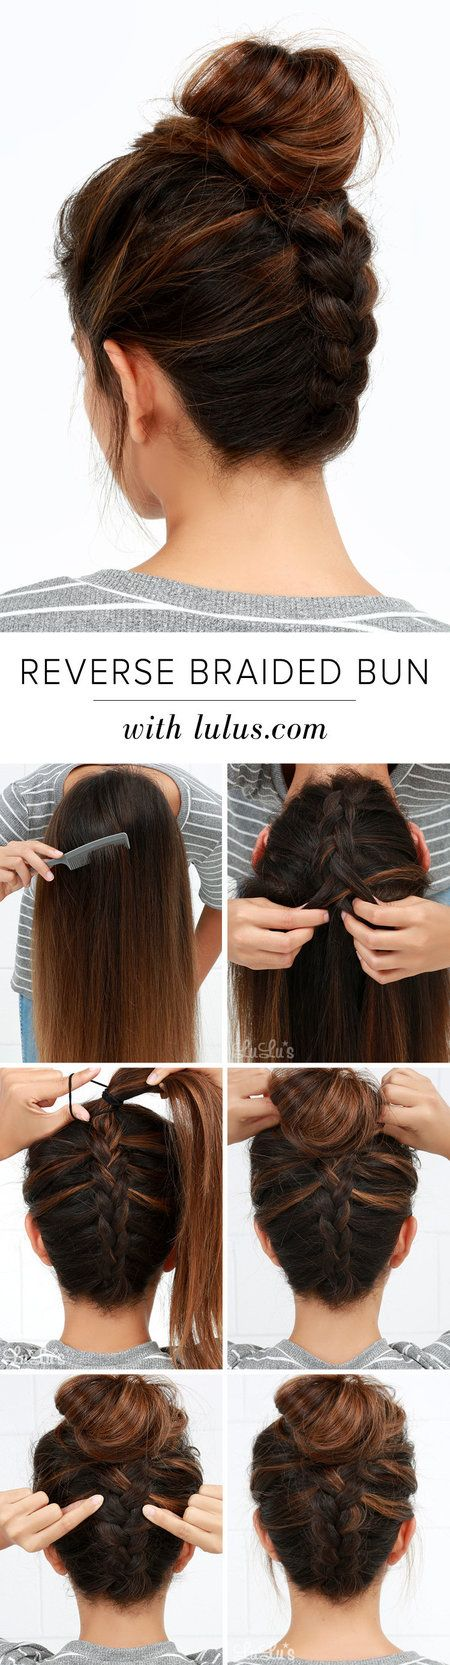 How-To: Reverse Braided Bun Hair Tutorial